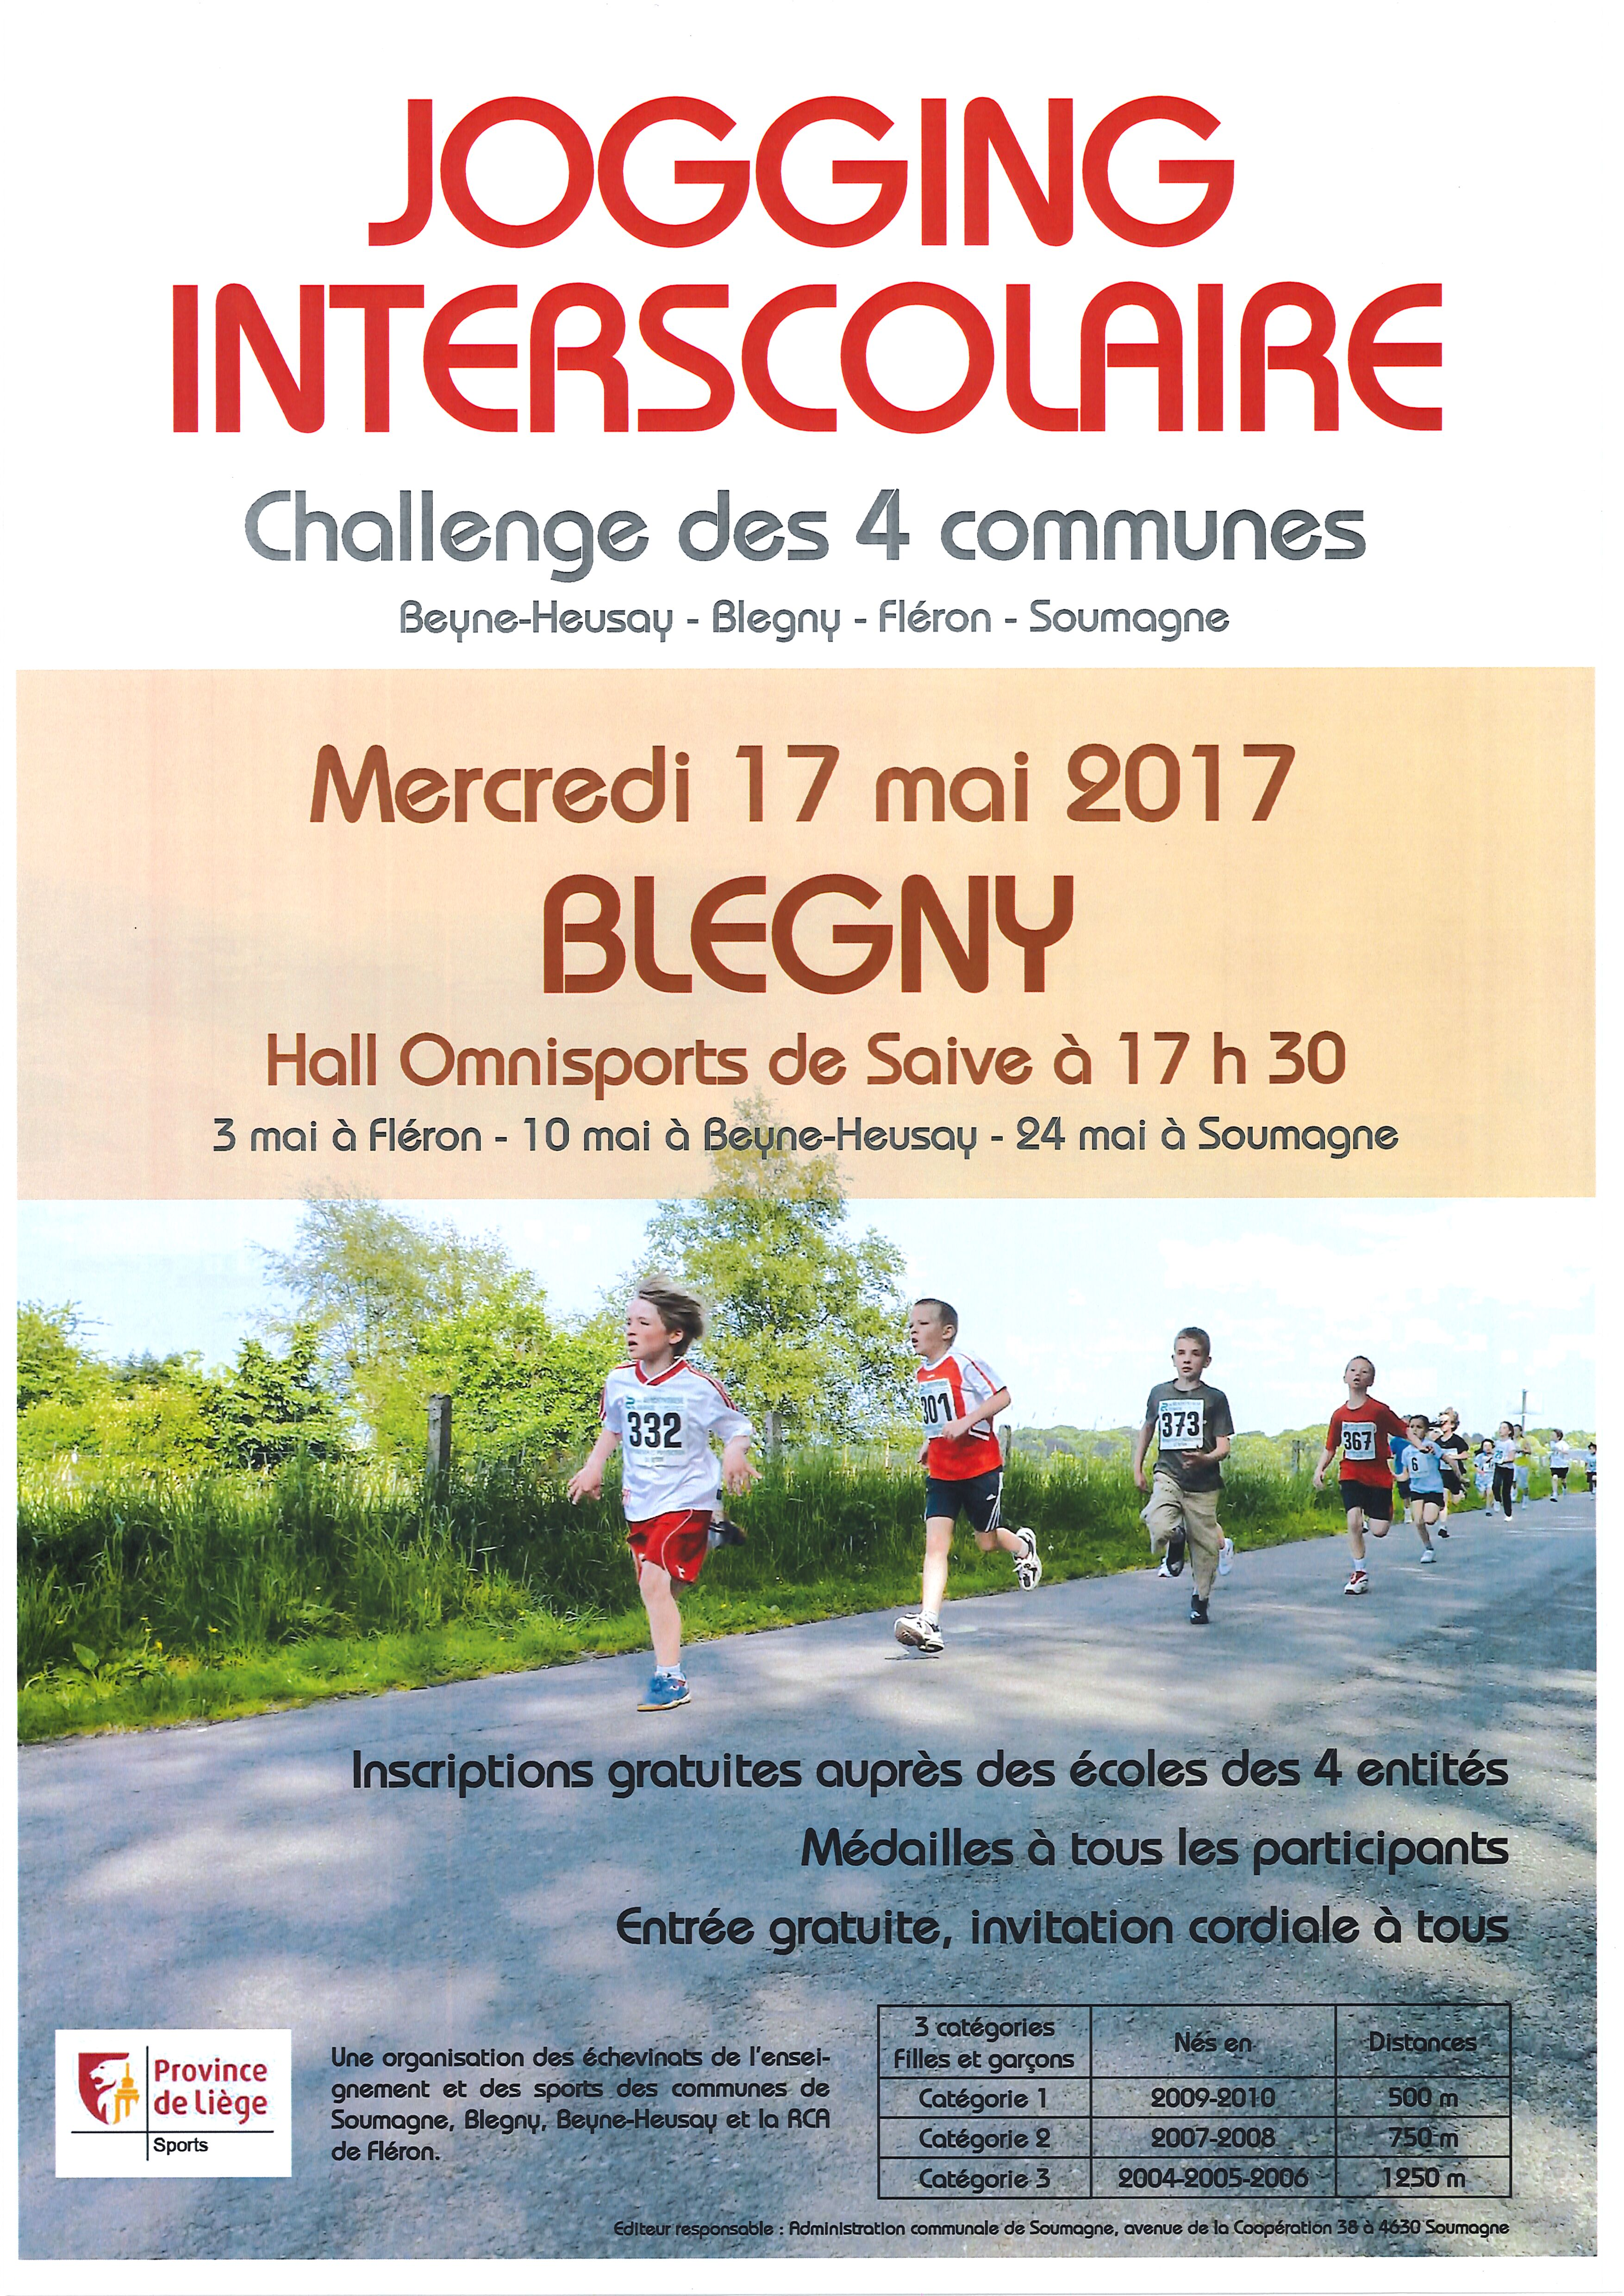 Jogging inter scolaire des 4 villages